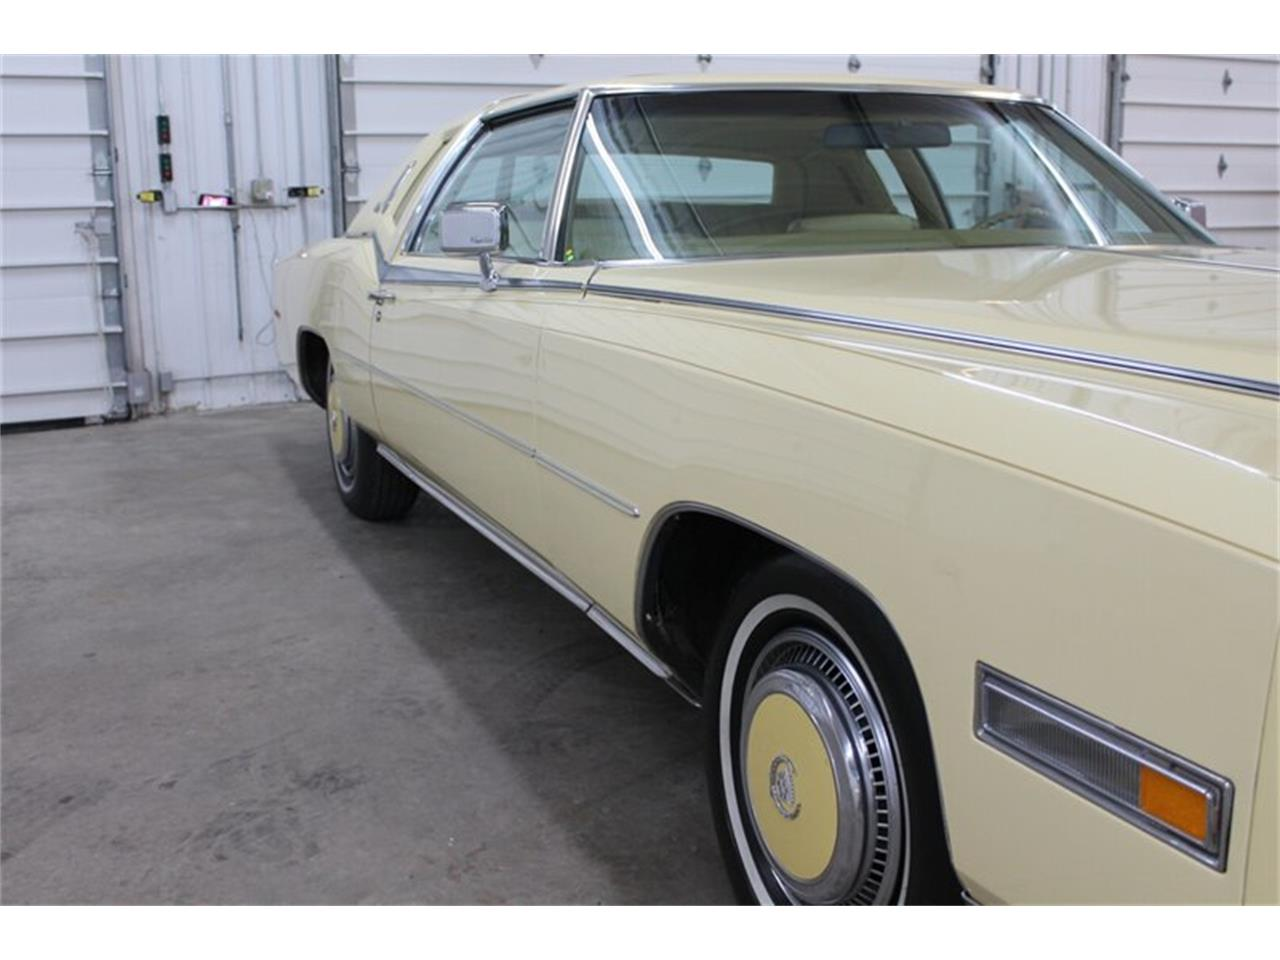 1978 Cadillac Eldorado Biarritz (CC-1422327) for sale in Fort Wayne, Indiana